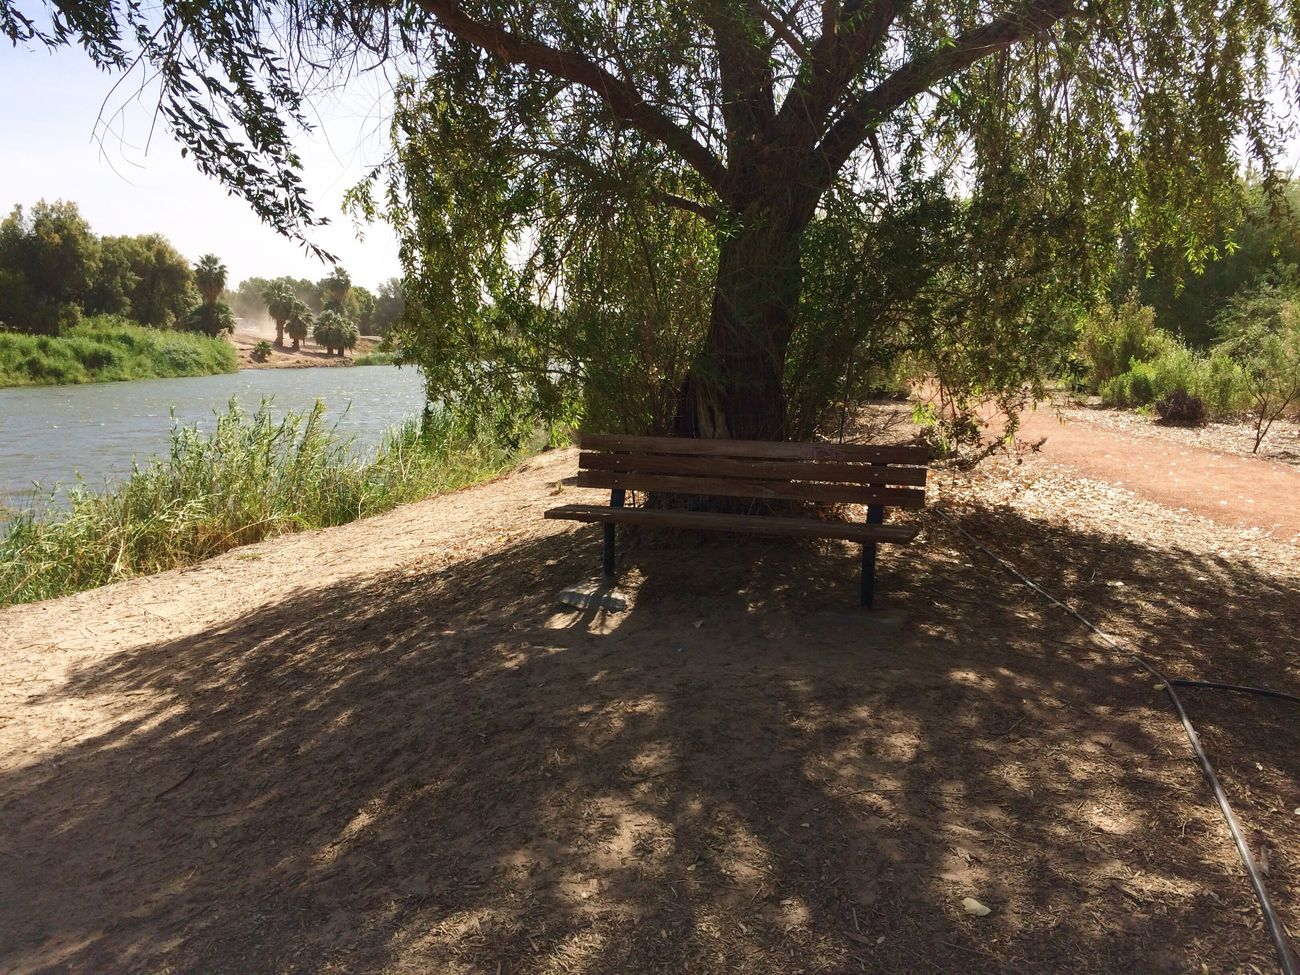 Much appreciated bench on nature trail next to the Colorado River, at West Wetlands Park in Yuma, AZ.✨ West Wetlands, Yuma, AZ Me Alone IPhone Photography Riverside Photography Tree Plant Shadow Nature Water Sunlight Tranquility Beauty In Nature Outdoors Sky Land Scenics - Nature Sand